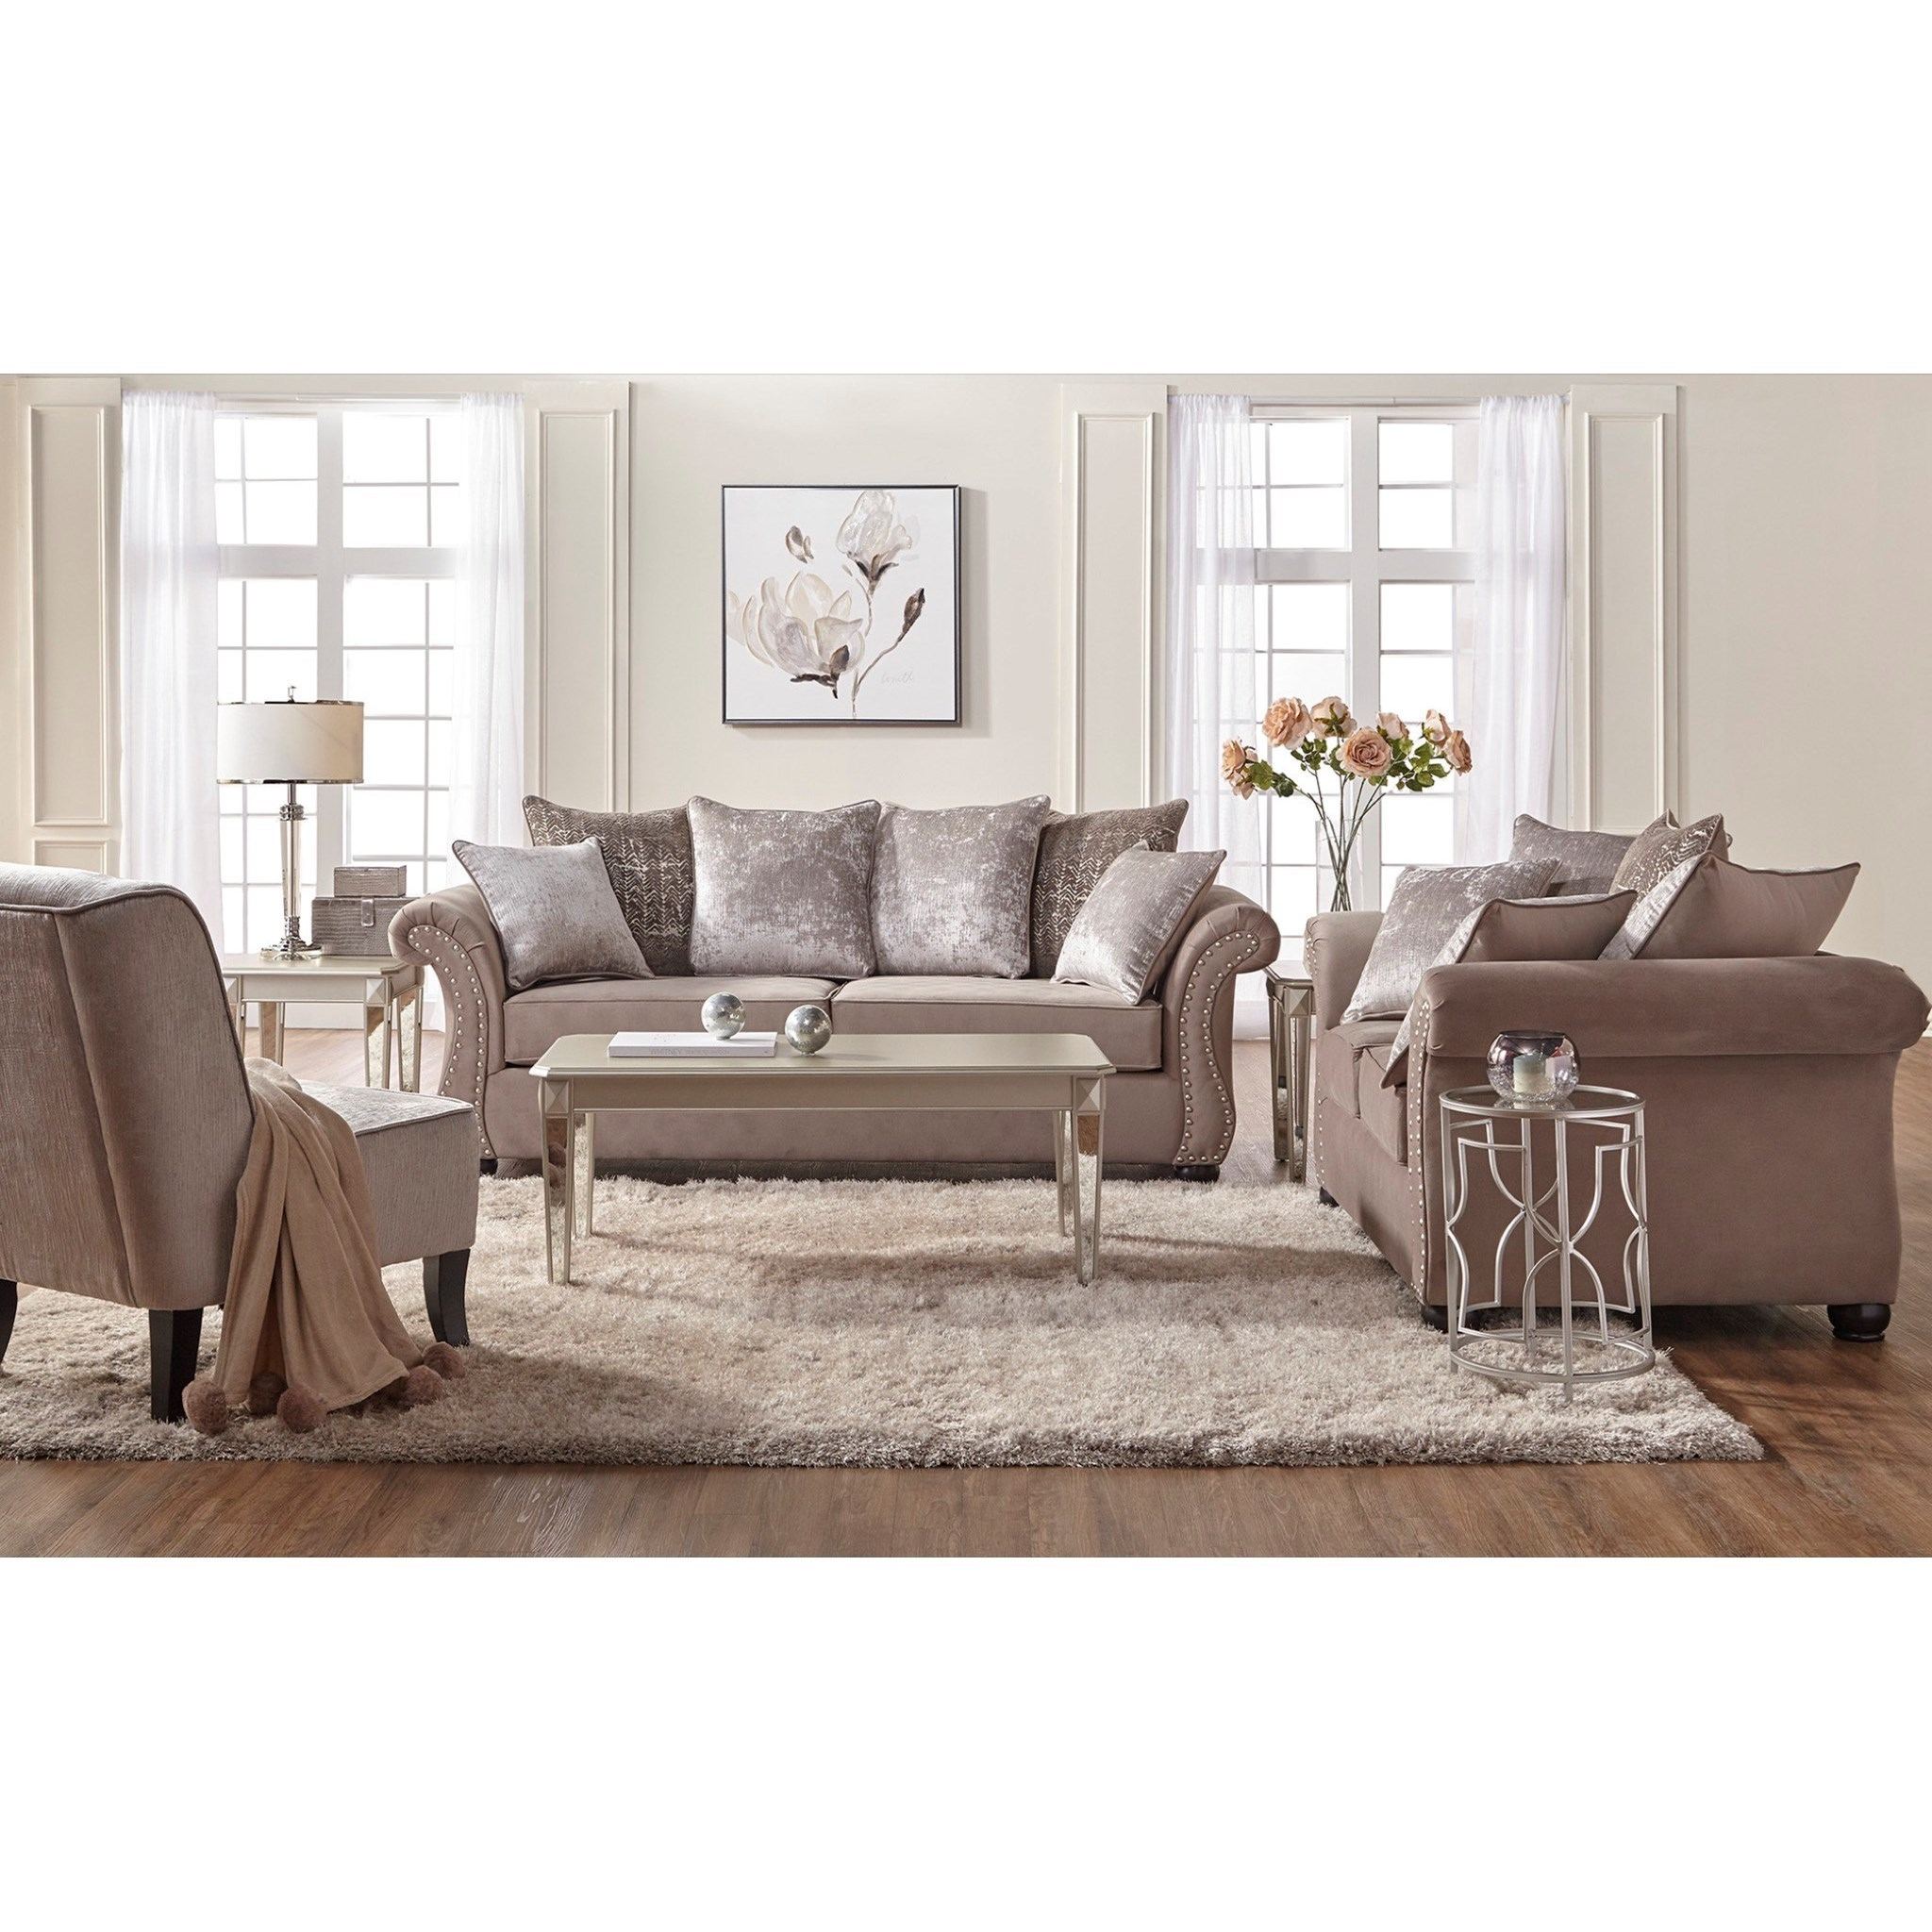 stunning Darvin Furniture Prices Part - 11: Serta Upholstery by Hughes Furniture 7500Stationary Living Room Group